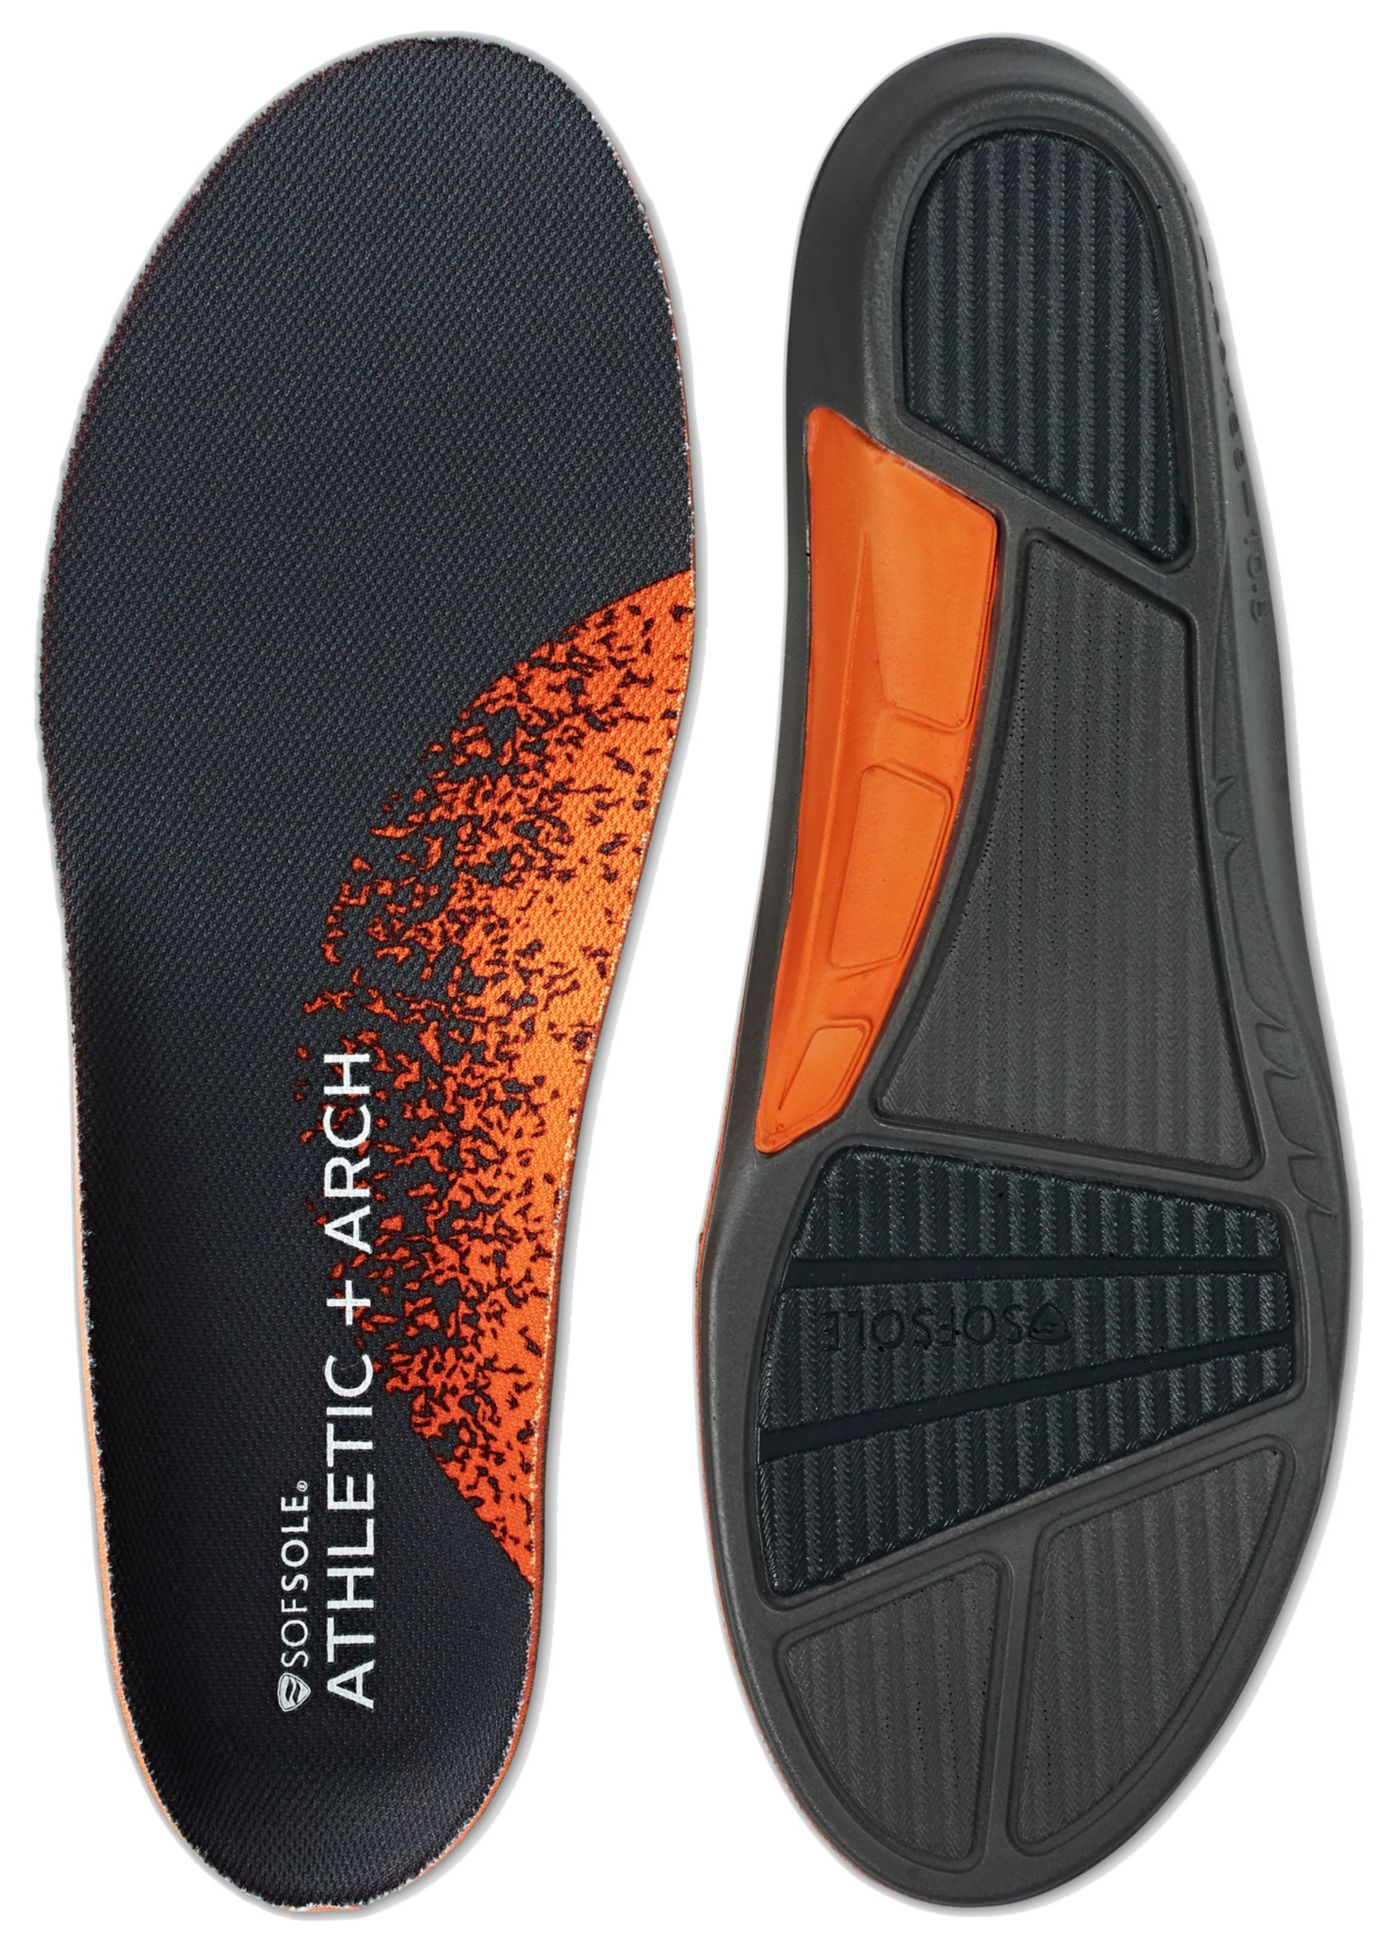 SofSole Men's Athletic Arch Insoles